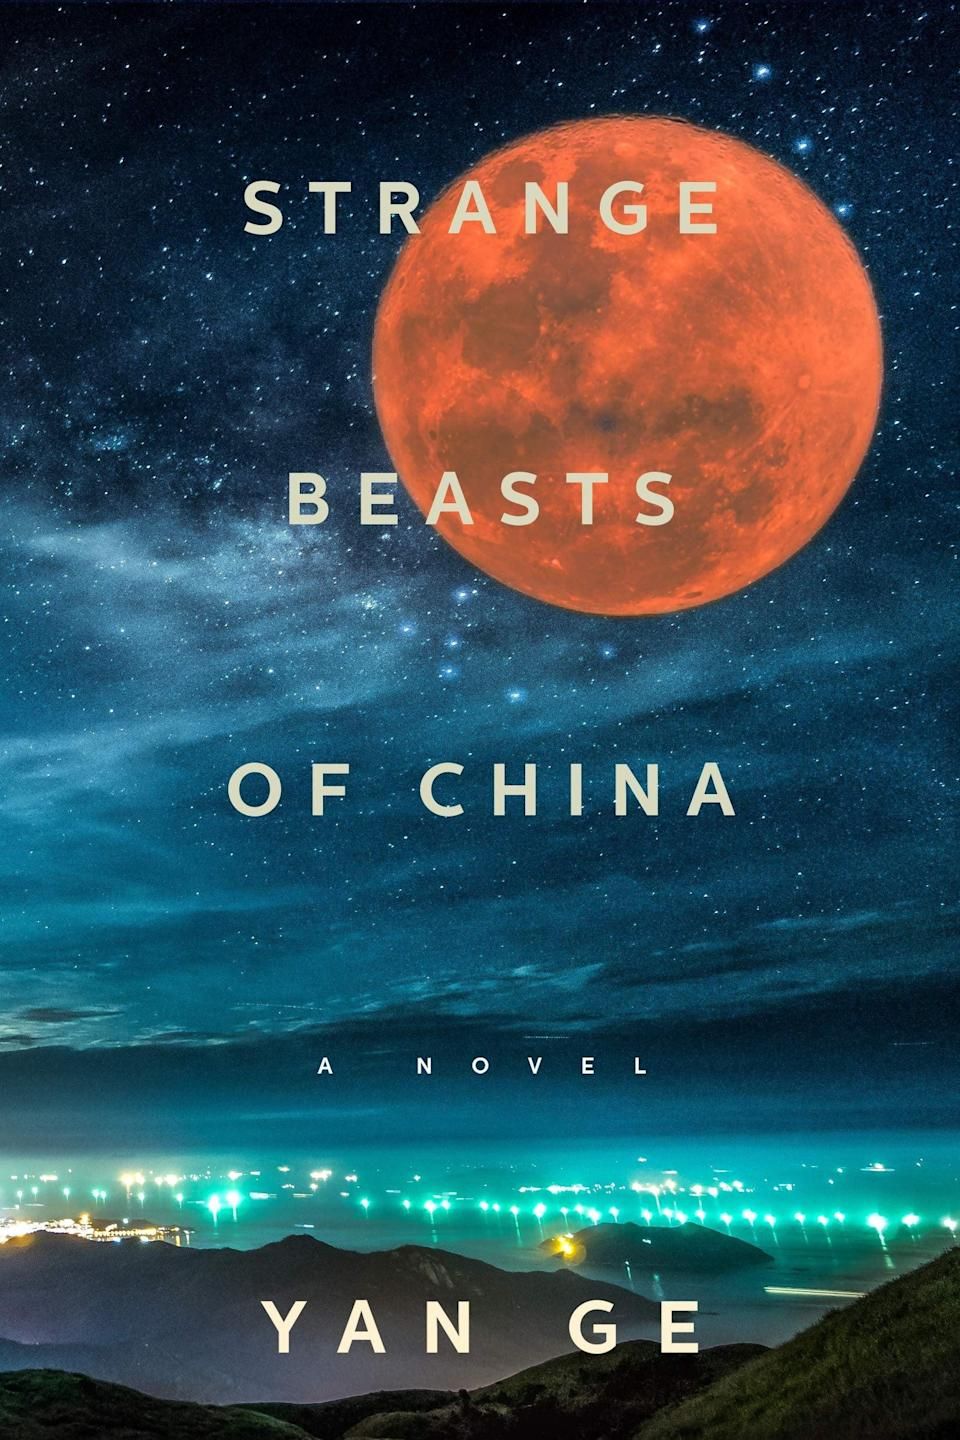 """Now translated into English for our reading pleasure, Yan Ge's <em>Strange Beasts Of China </em>follows the life of a cryptozoologist and her former professor as they attempt to learn more about a group of creatures. Set in the fictional city of Yong'an, here, beasts live alongside humans, sharing the good and bad of modern urban living. With some beasts artificially engineered and some that of old folklore, the two main characters set out to document each individual creature for their own interest. But while the cryptozoologist hopes to learn more about the beast's existence, it soon becomes clear that she may unravel a mystery surrounding herself too. Discussing environmentalism, our relationship with sentient beings and ancient mythology, this obscure read says a whole lot about the state of our modern world. <br><br><strong>Yan Ge</strong> Strange Beasts of China, $, available at <a href=""""https://www.amazon.co.uk/Strange-Beasts-China-Yan-Ge/dp/1612199097"""" rel=""""nofollow noopener"""" target=""""_blank"""" data-ylk=""""slk:Amazon"""" class=""""link rapid-noclick-resp"""">Amazon</a>"""